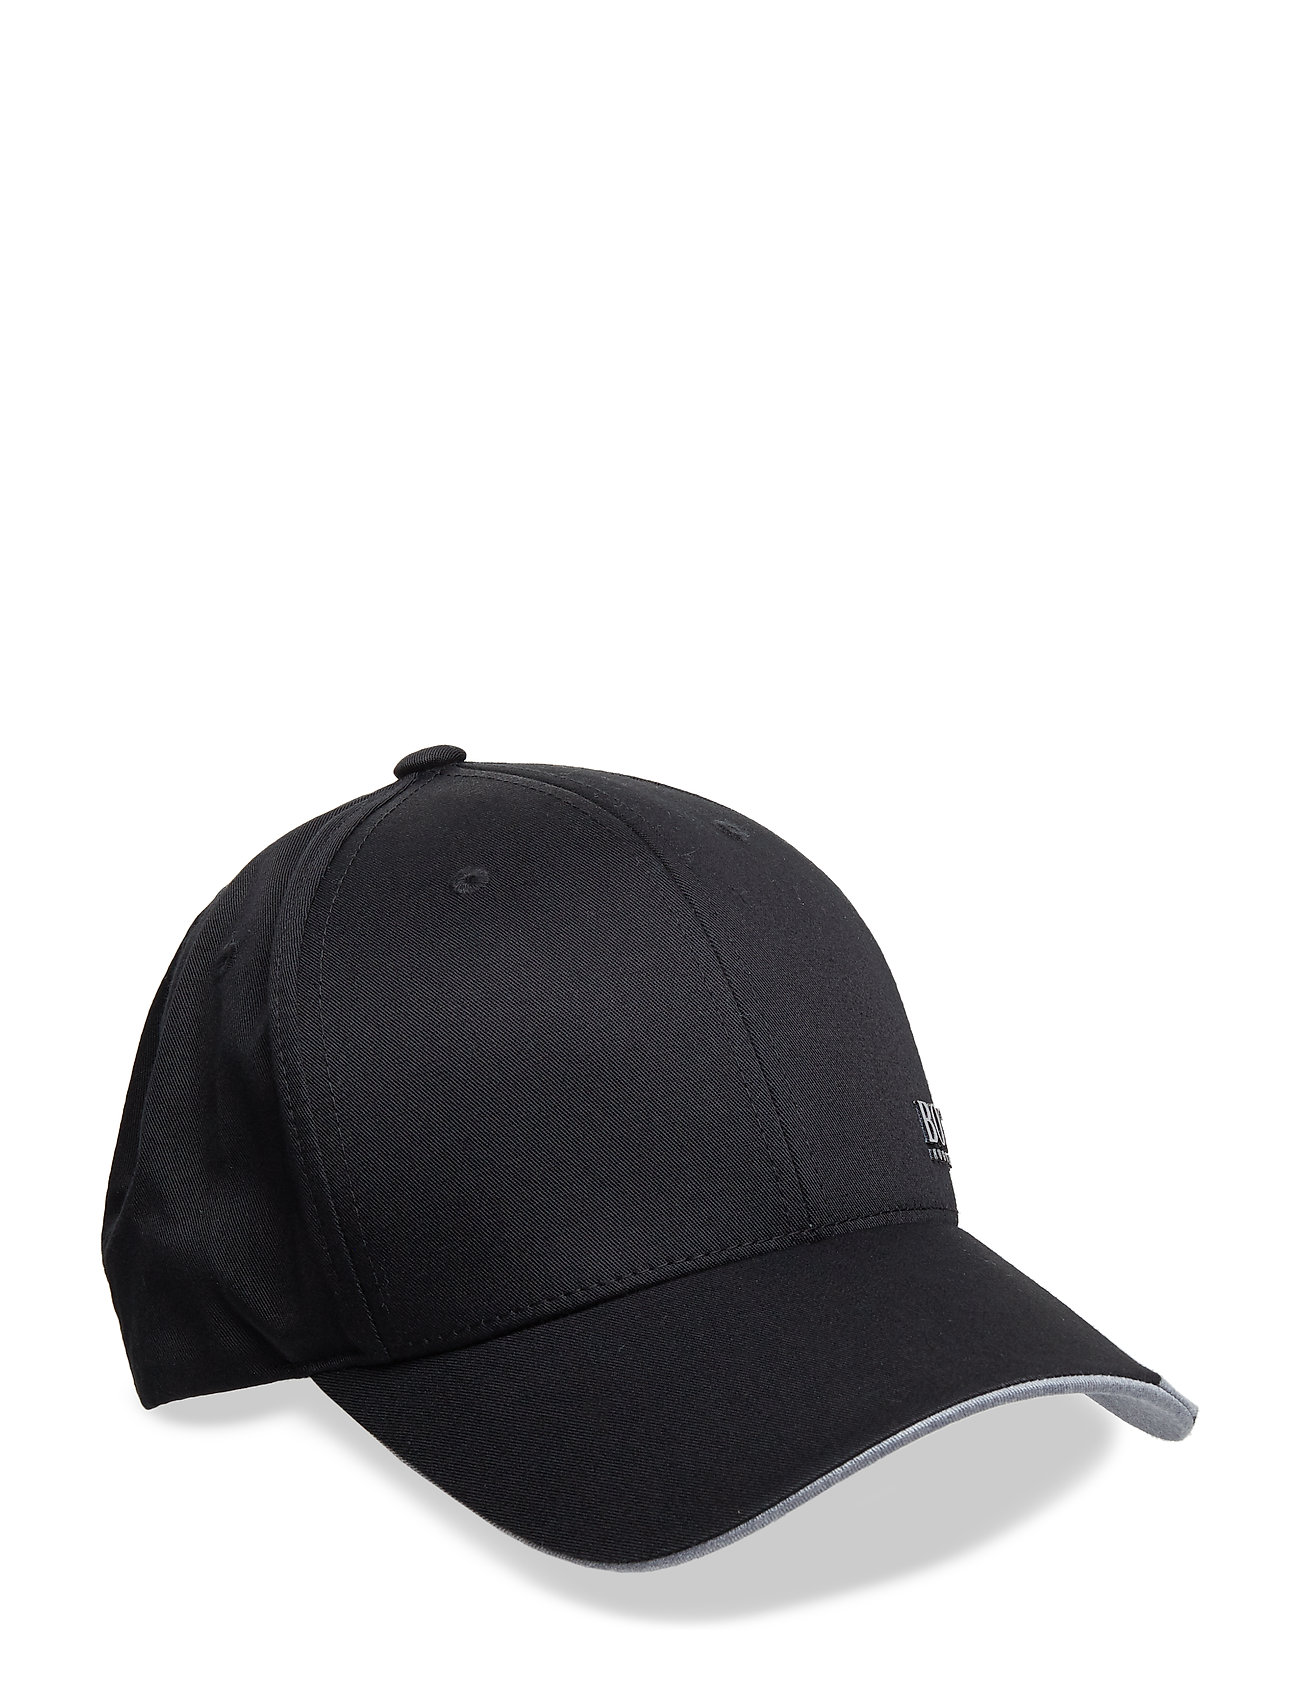 Cap-Basic - Boss Athleisure Wear